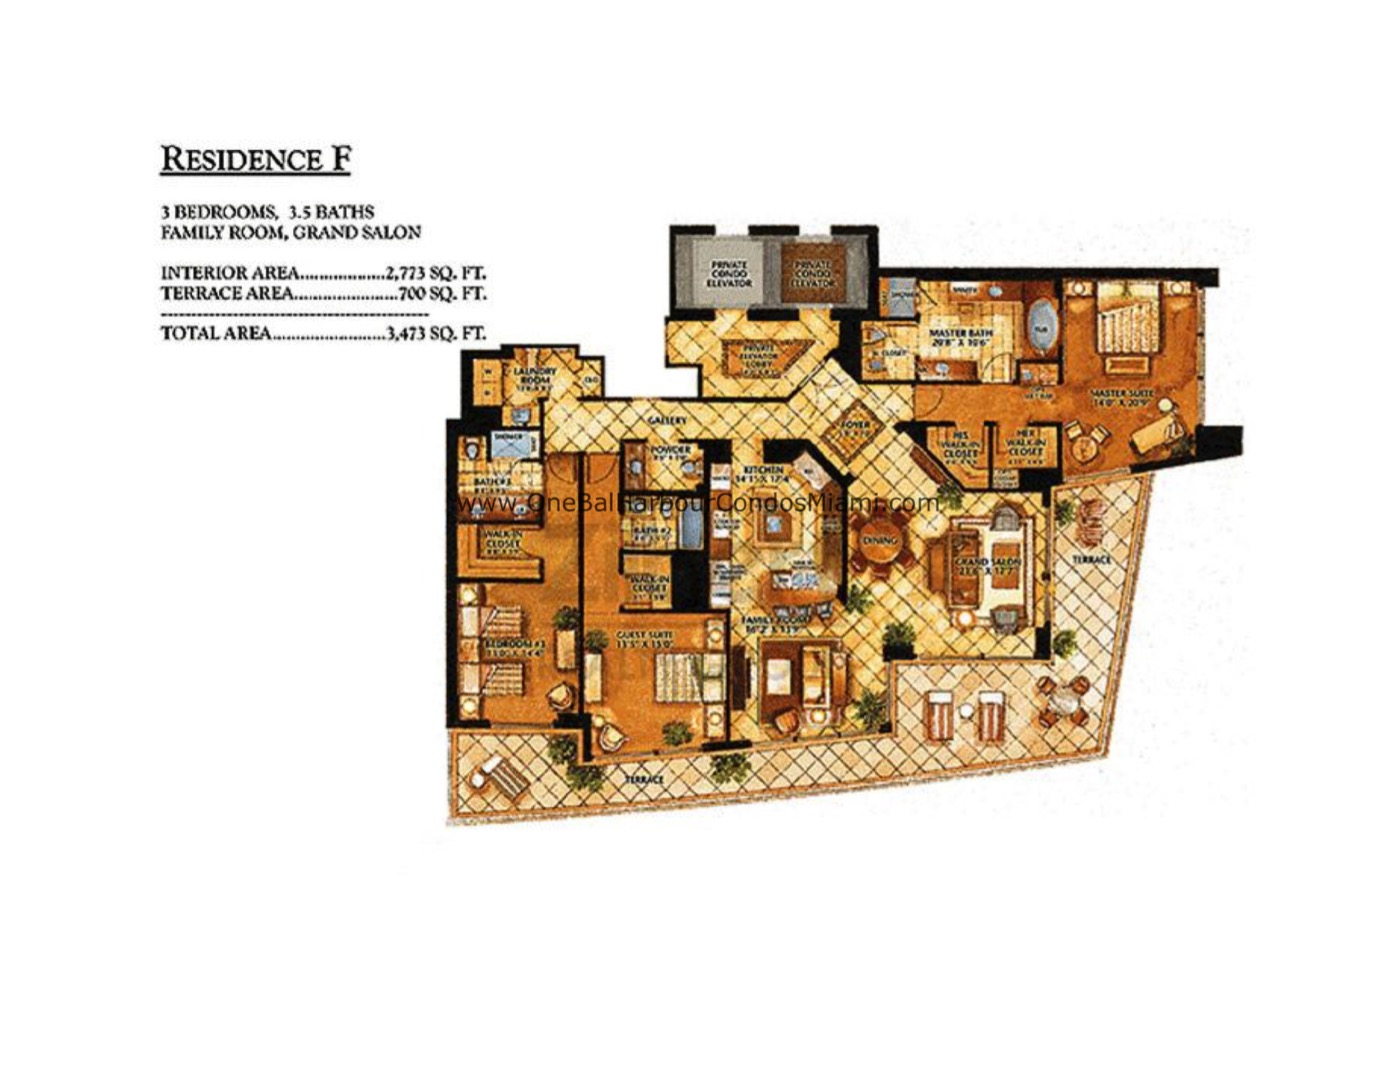 Floor plan image F - 3/3/1  - 2773 sqft image